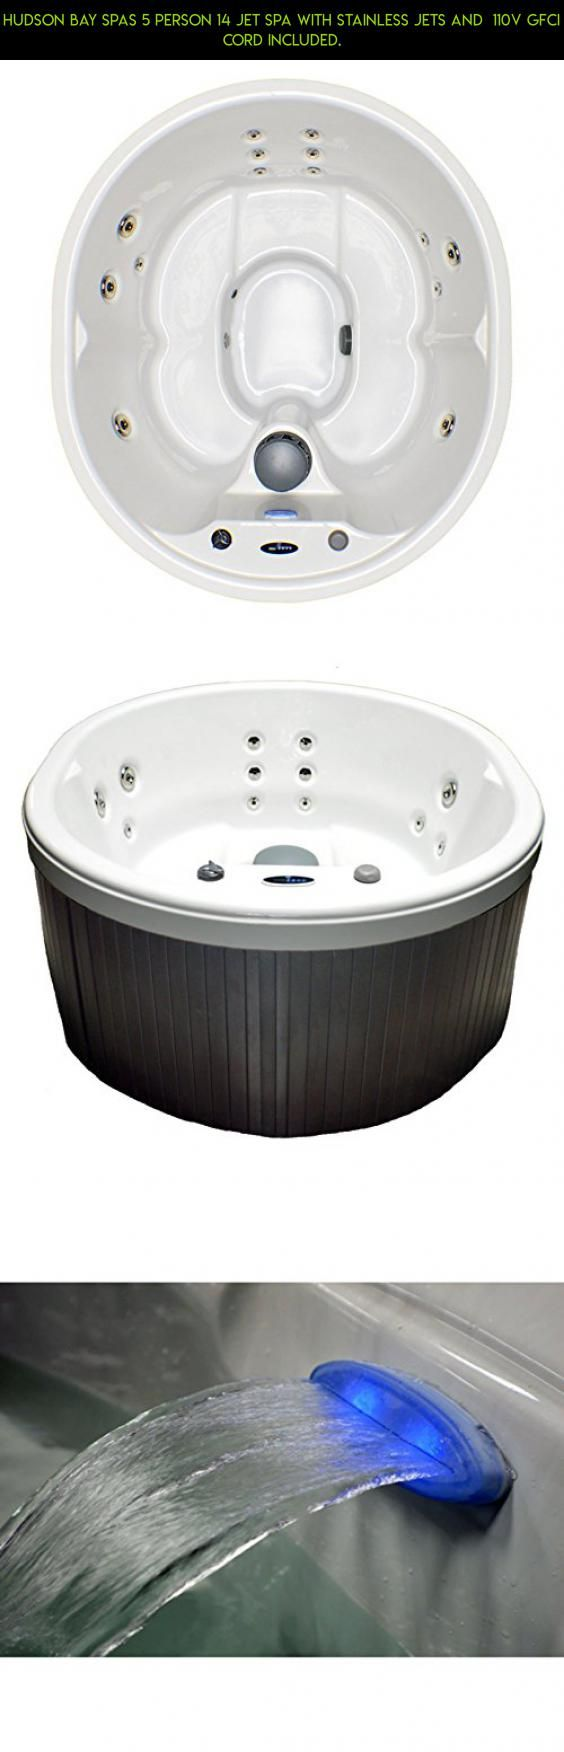 hot with lounger jets base person spa geo com snow shopperschoice tub white mahogany shell